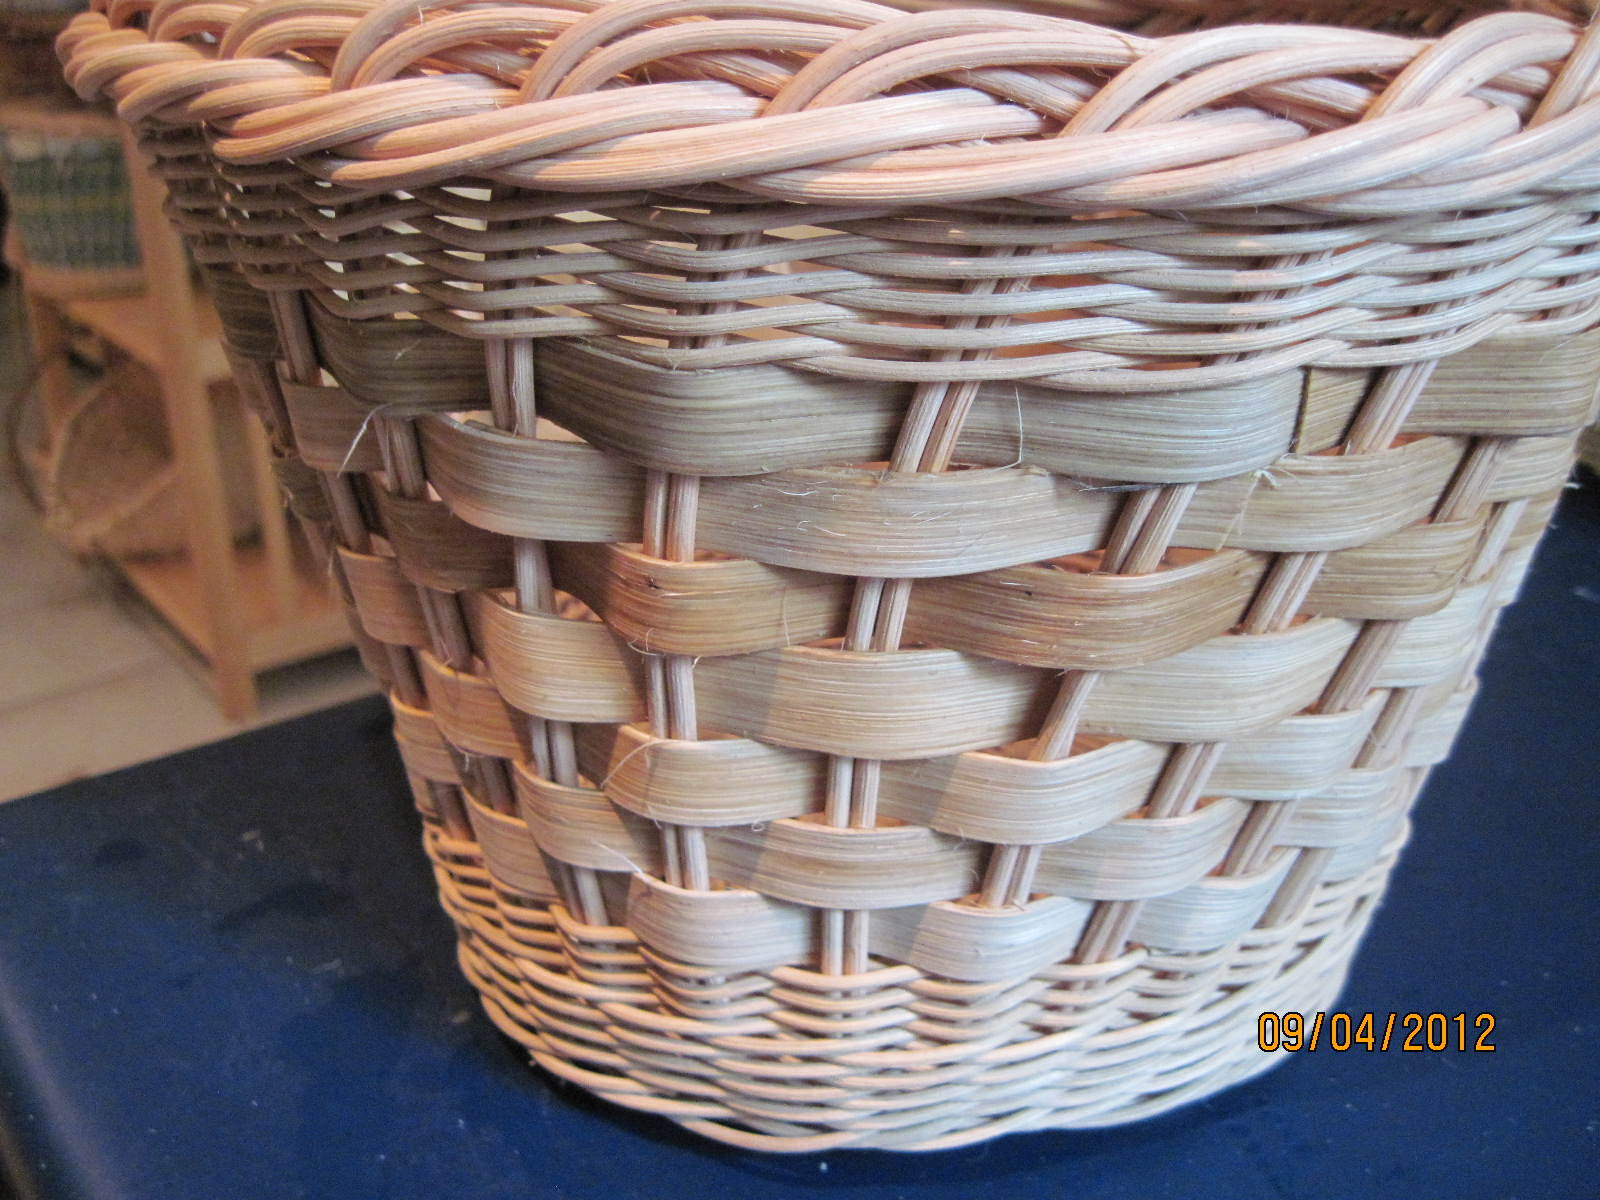 How To Weave A Cane Basket : John toft basketry upgrading open weave baskets